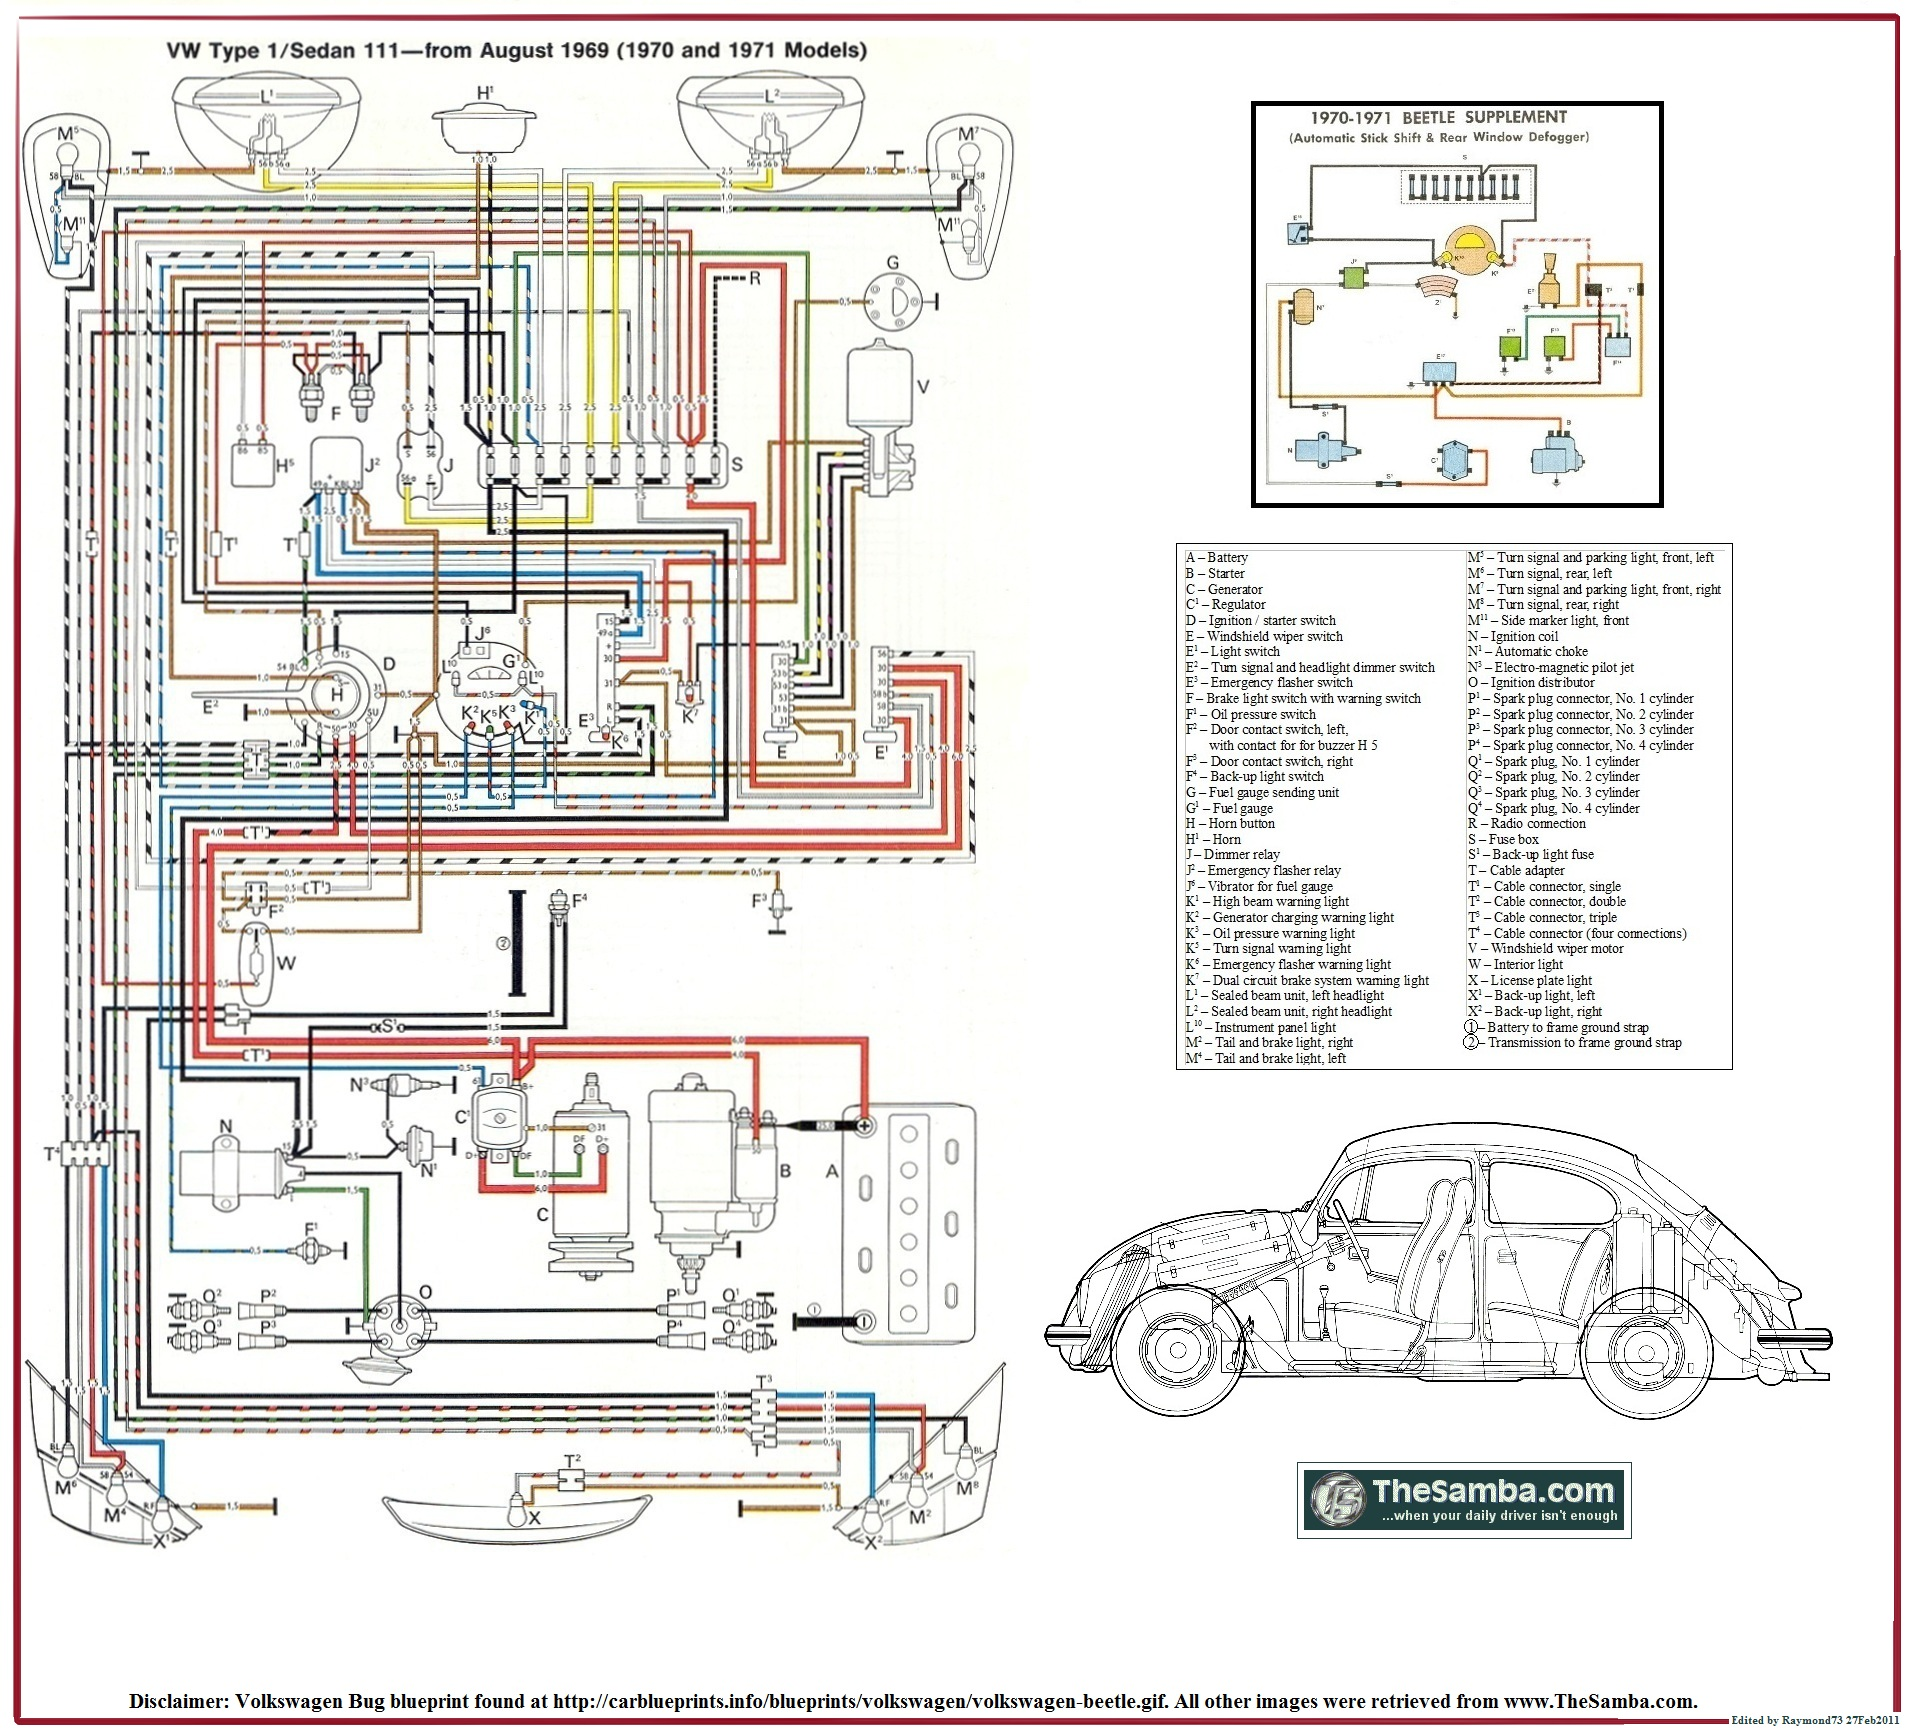 1970_VW_Type_1_Poster thesamba com beetle late model super 1968 up view topic Electrical Wiring Diagrams at gsmx.co